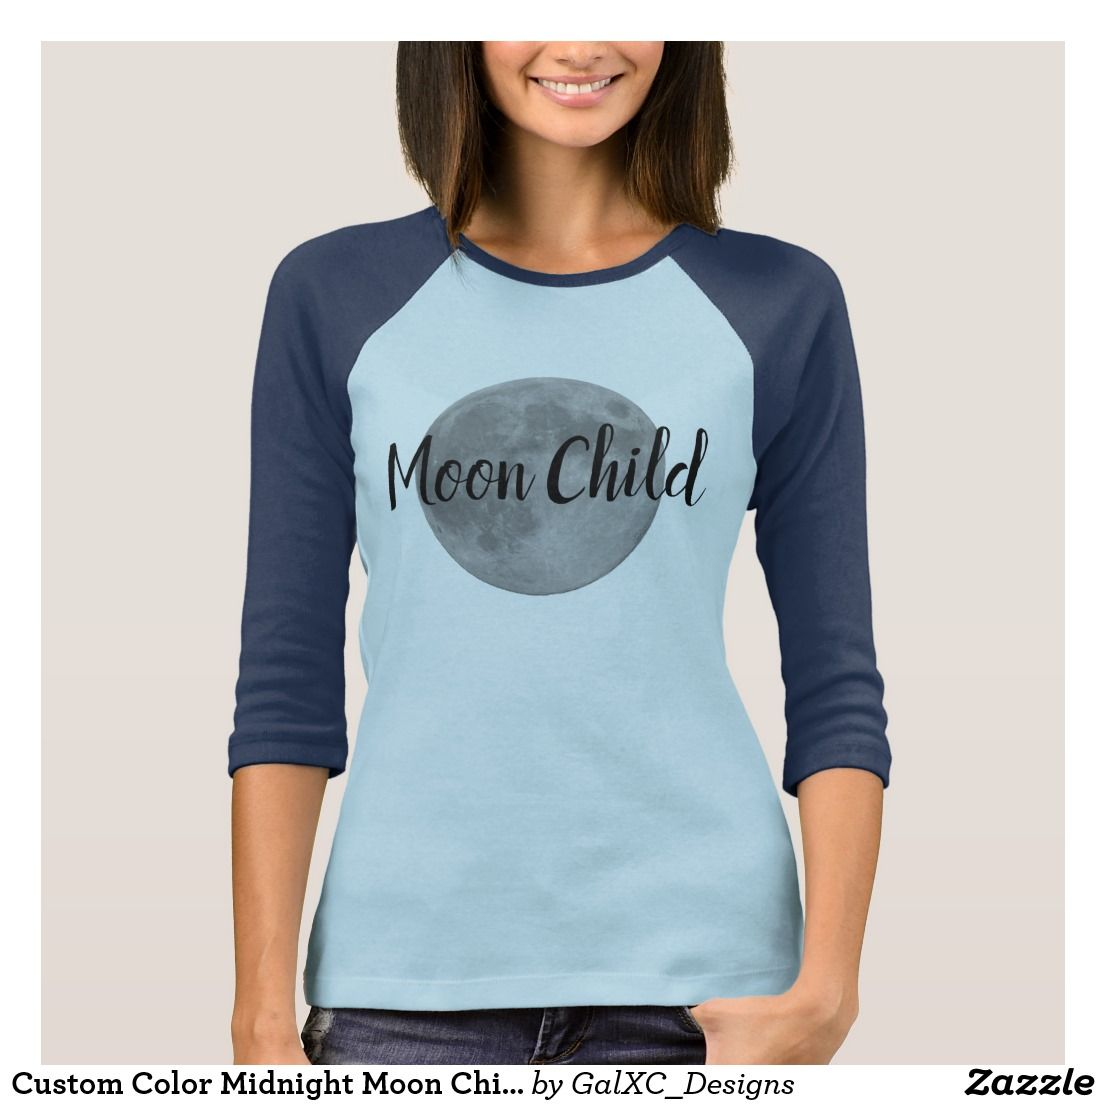 Custom Color Midnight Moon Child Blue Raglan Shirt New Items In